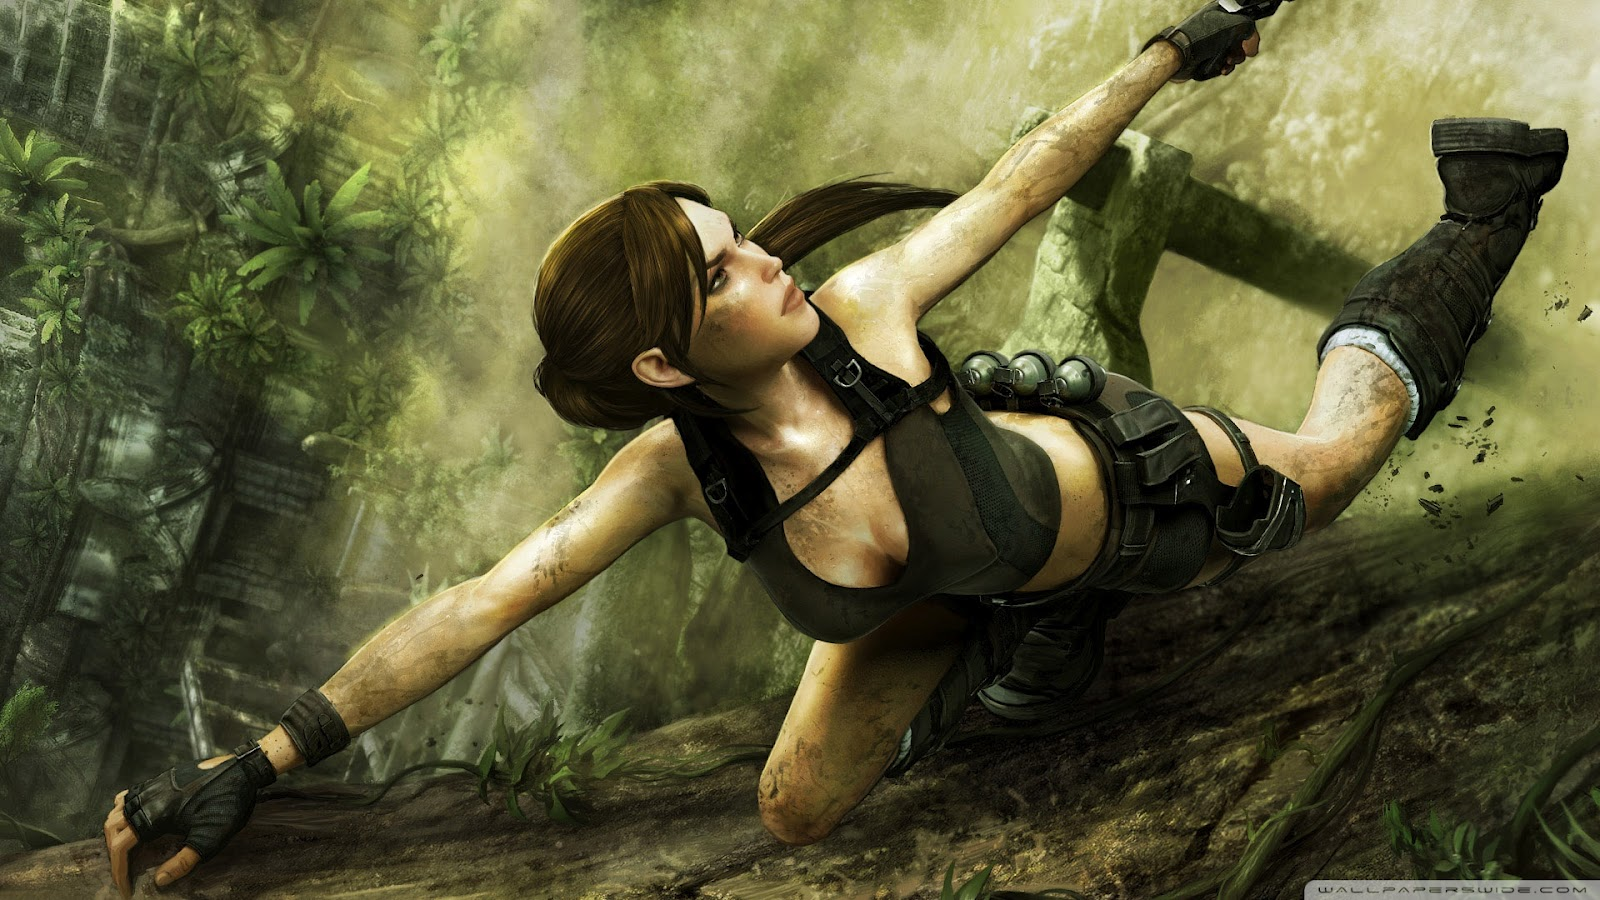 Tomb Raider HD & Widescreen Wallpaper 0.833365169955493